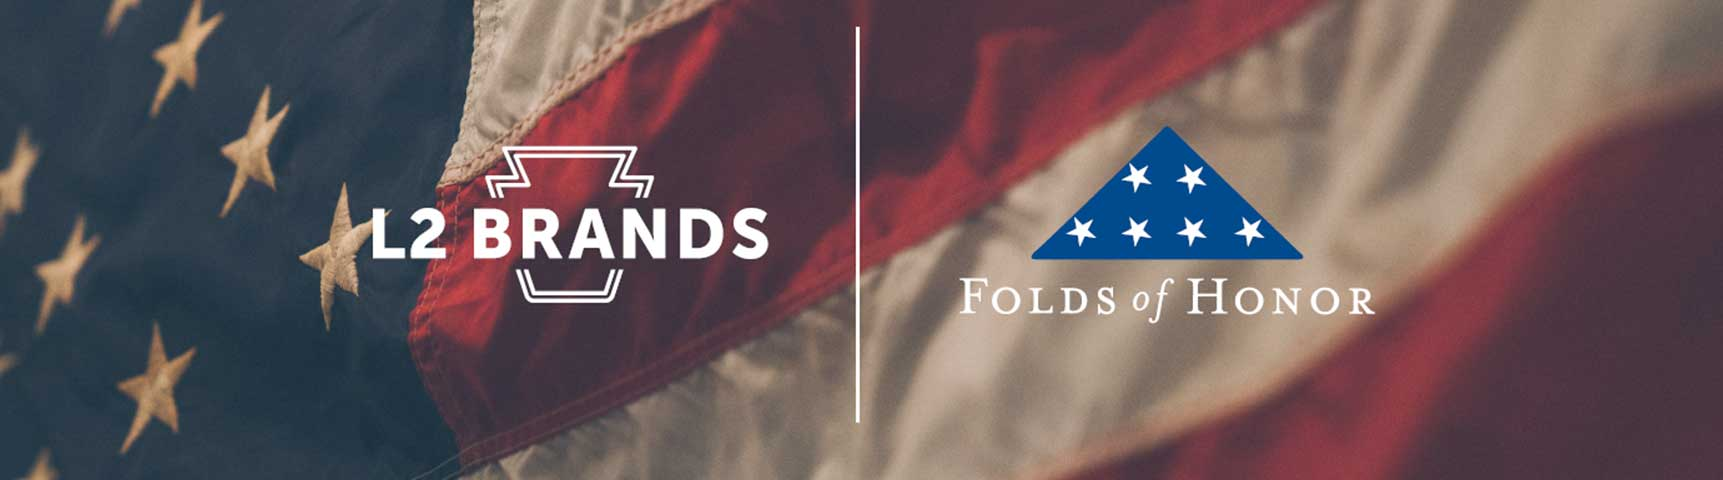 Folds of Honor and L2 Brands Collaboration Header